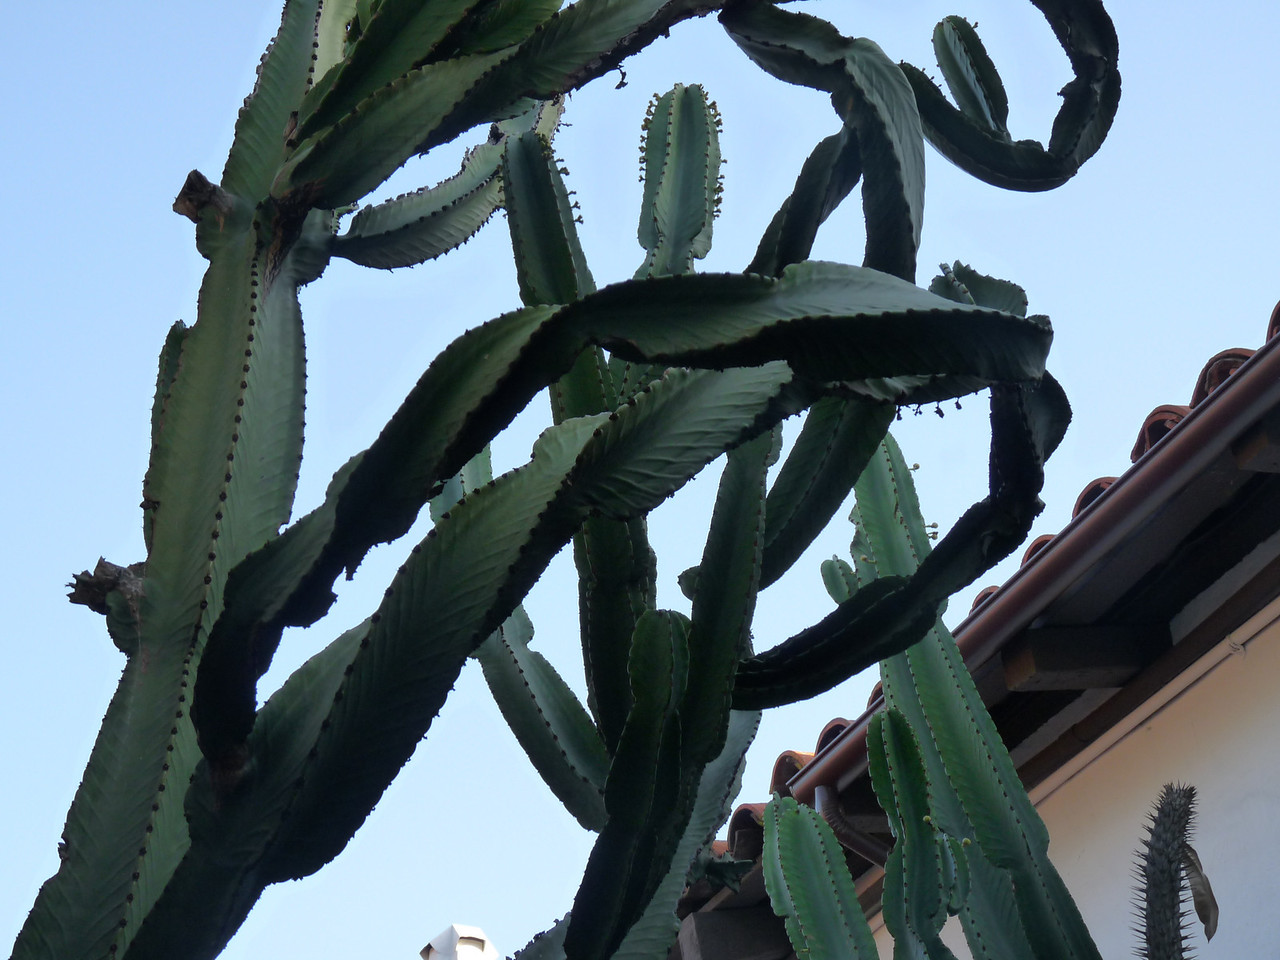 just an interesting tangle of cacti